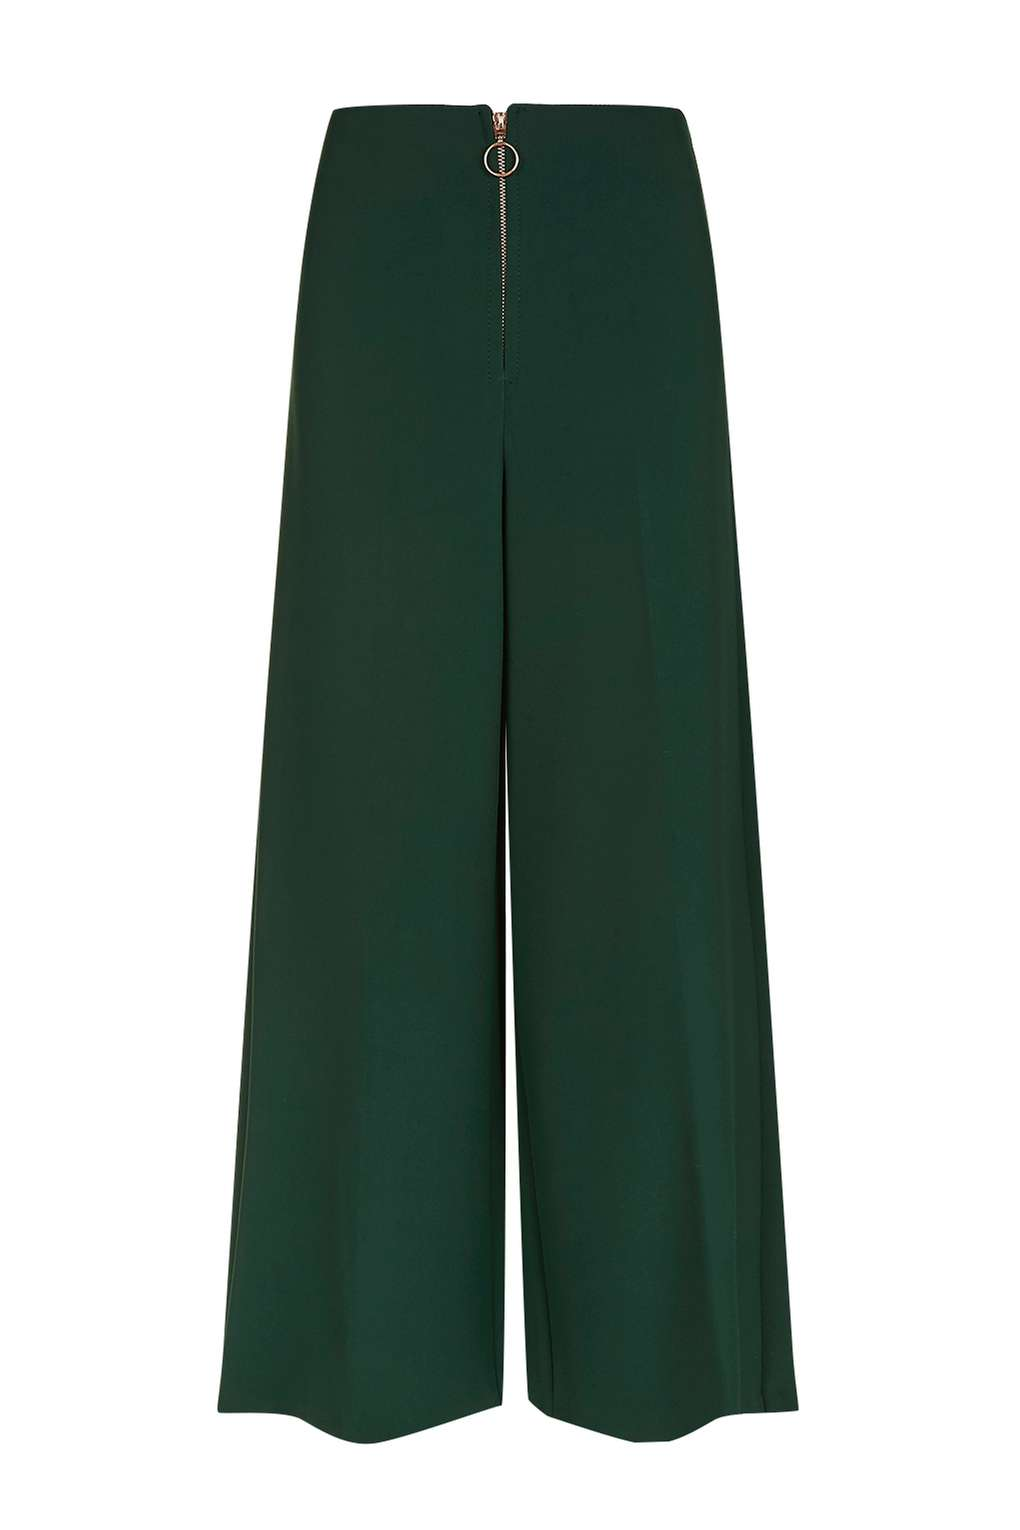 Zip Front Cropped Wide Leg Trousers £40.00 Click to visit Topshop